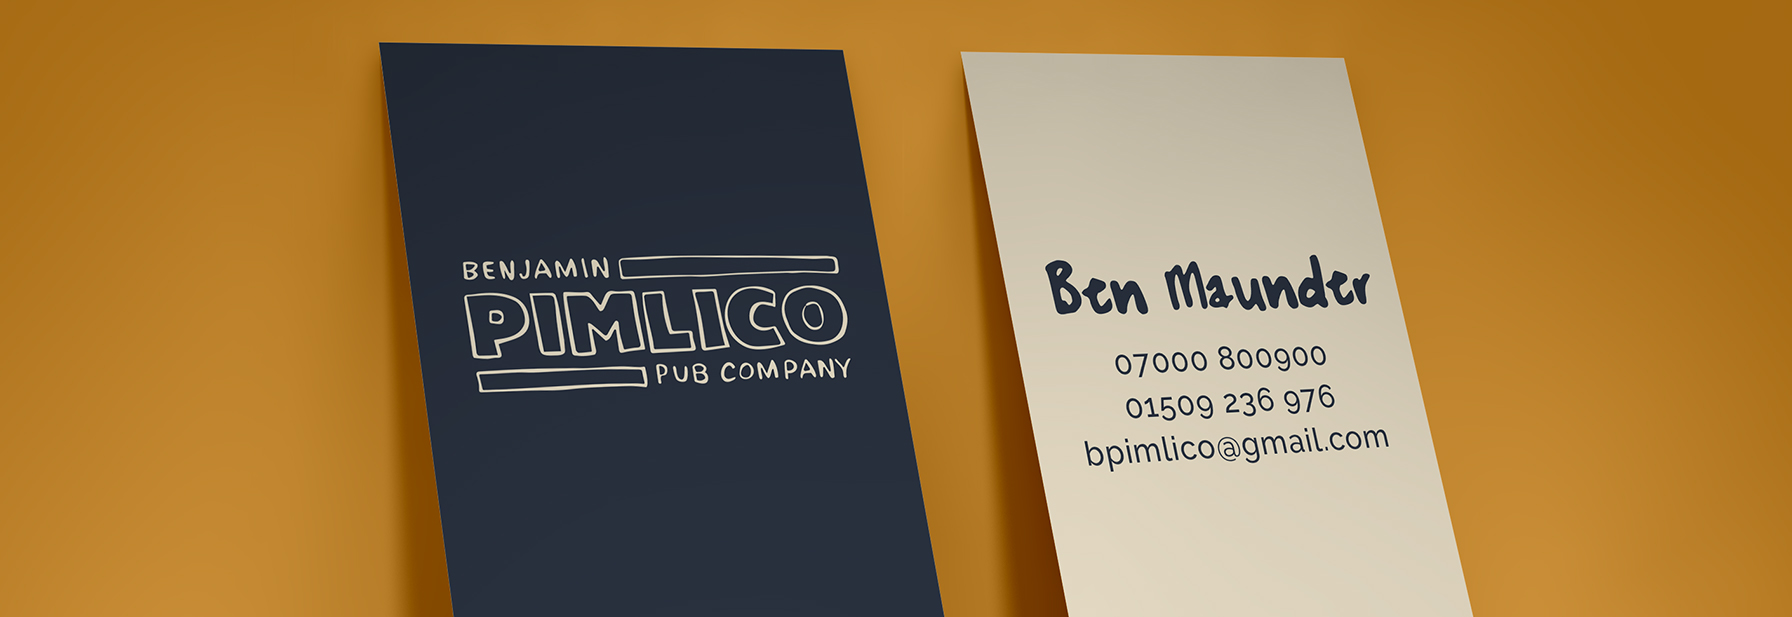 Front and back of business card for Benjamin Pimlico Pub Company